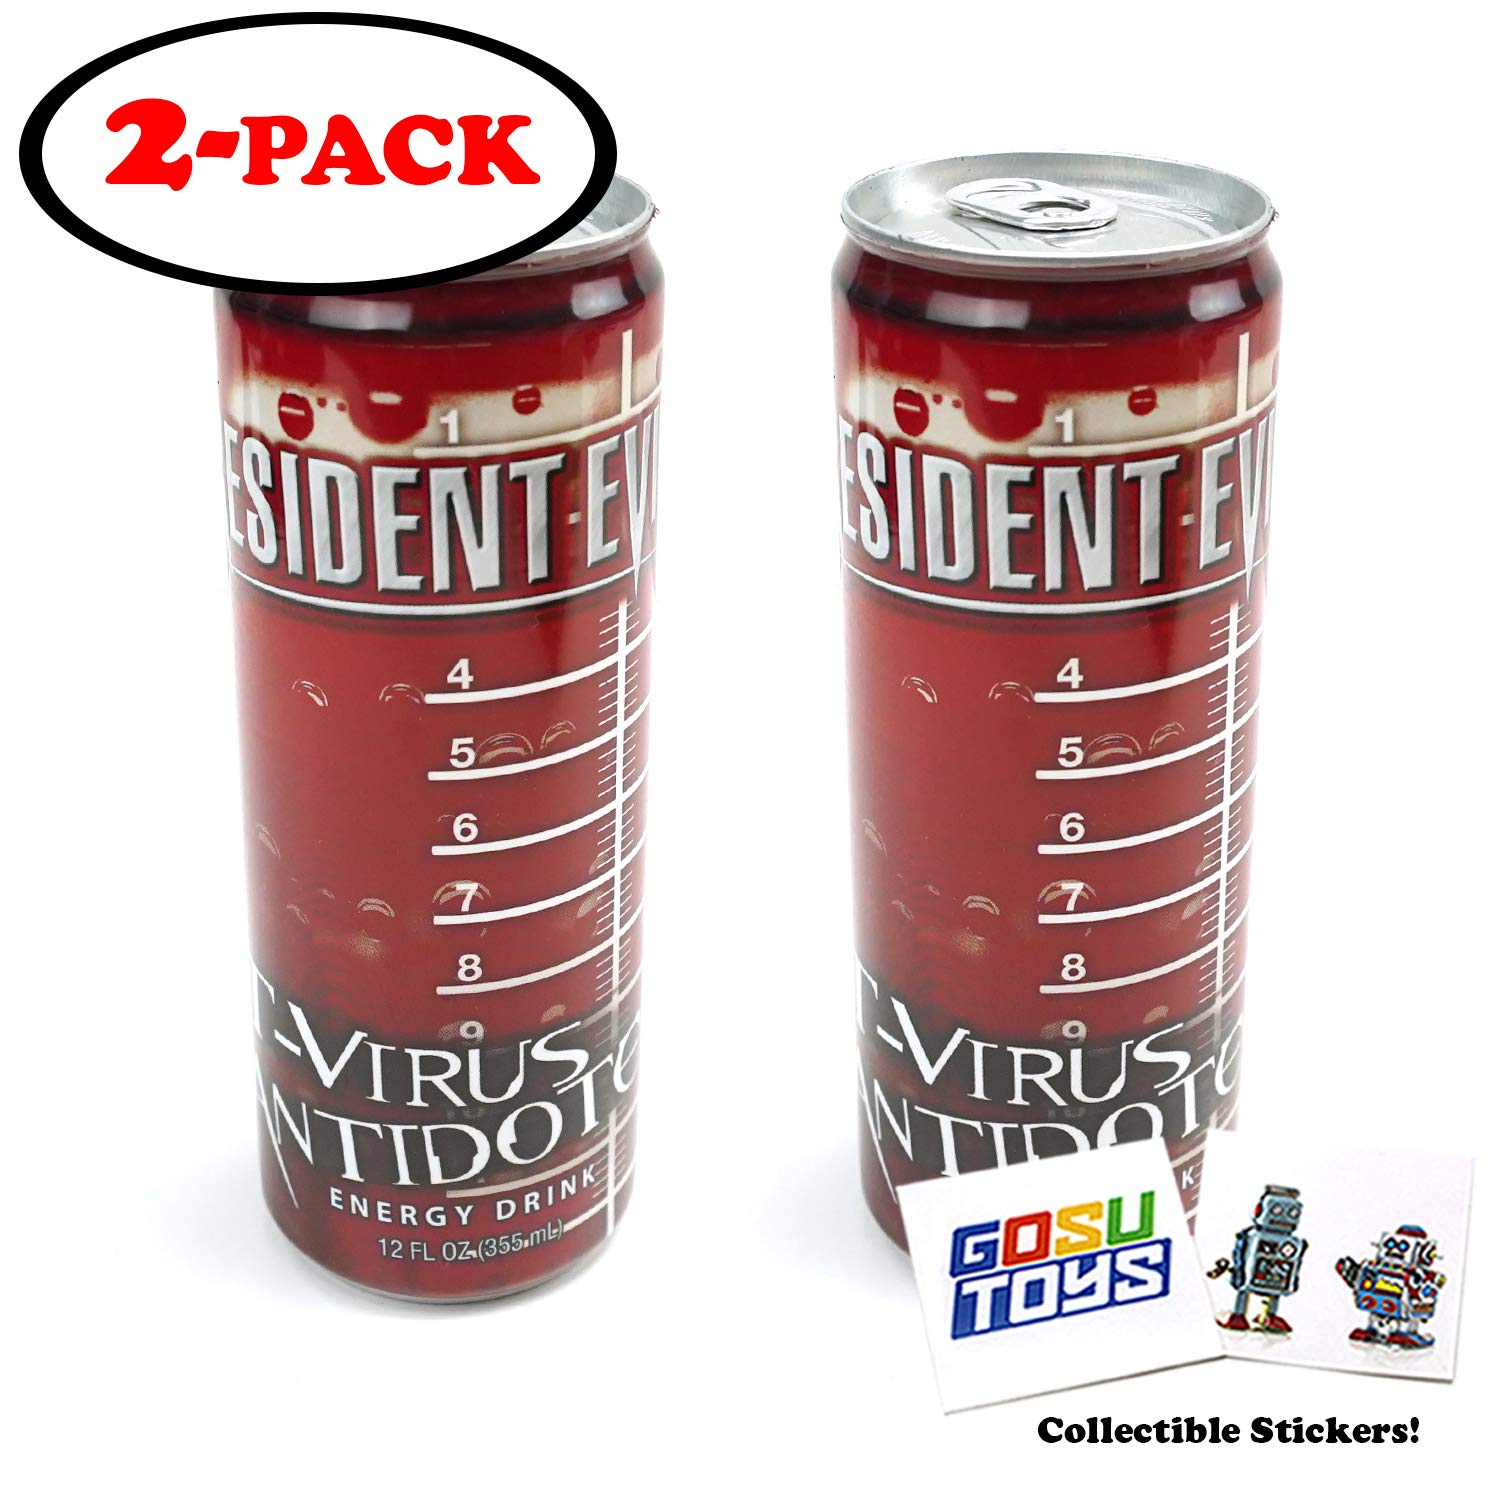 Resident Evil T Virus Antidote Energy Drink 12 FL OZ (355mL) (2 Pack) Can With 2 GosuToys Stickers